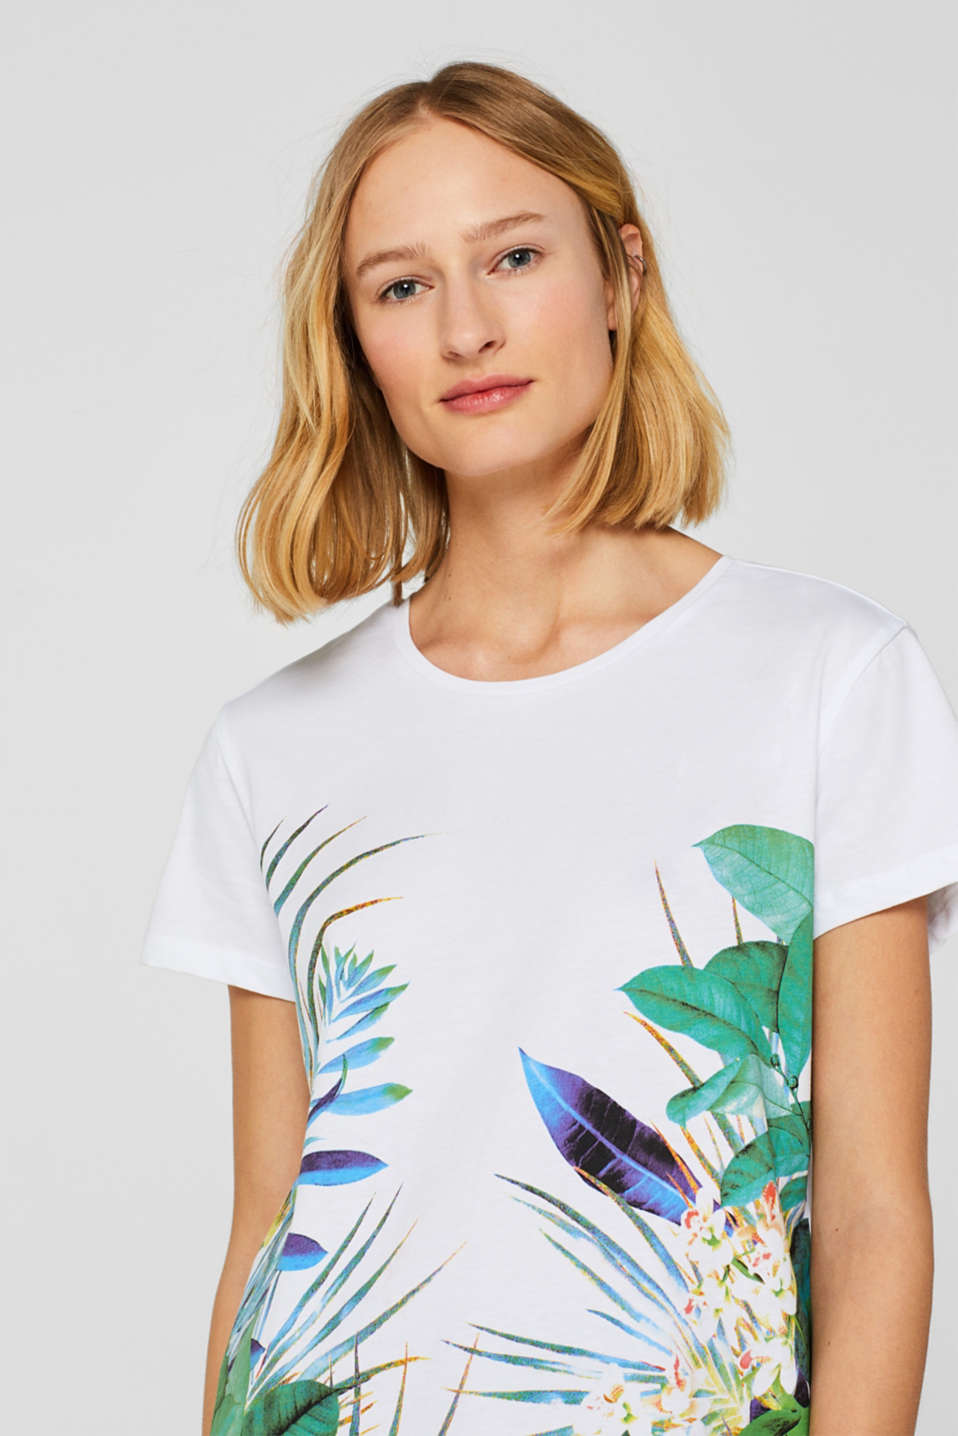 Esprit - Printed T-shirt in mixed fabrics, 100% cotton